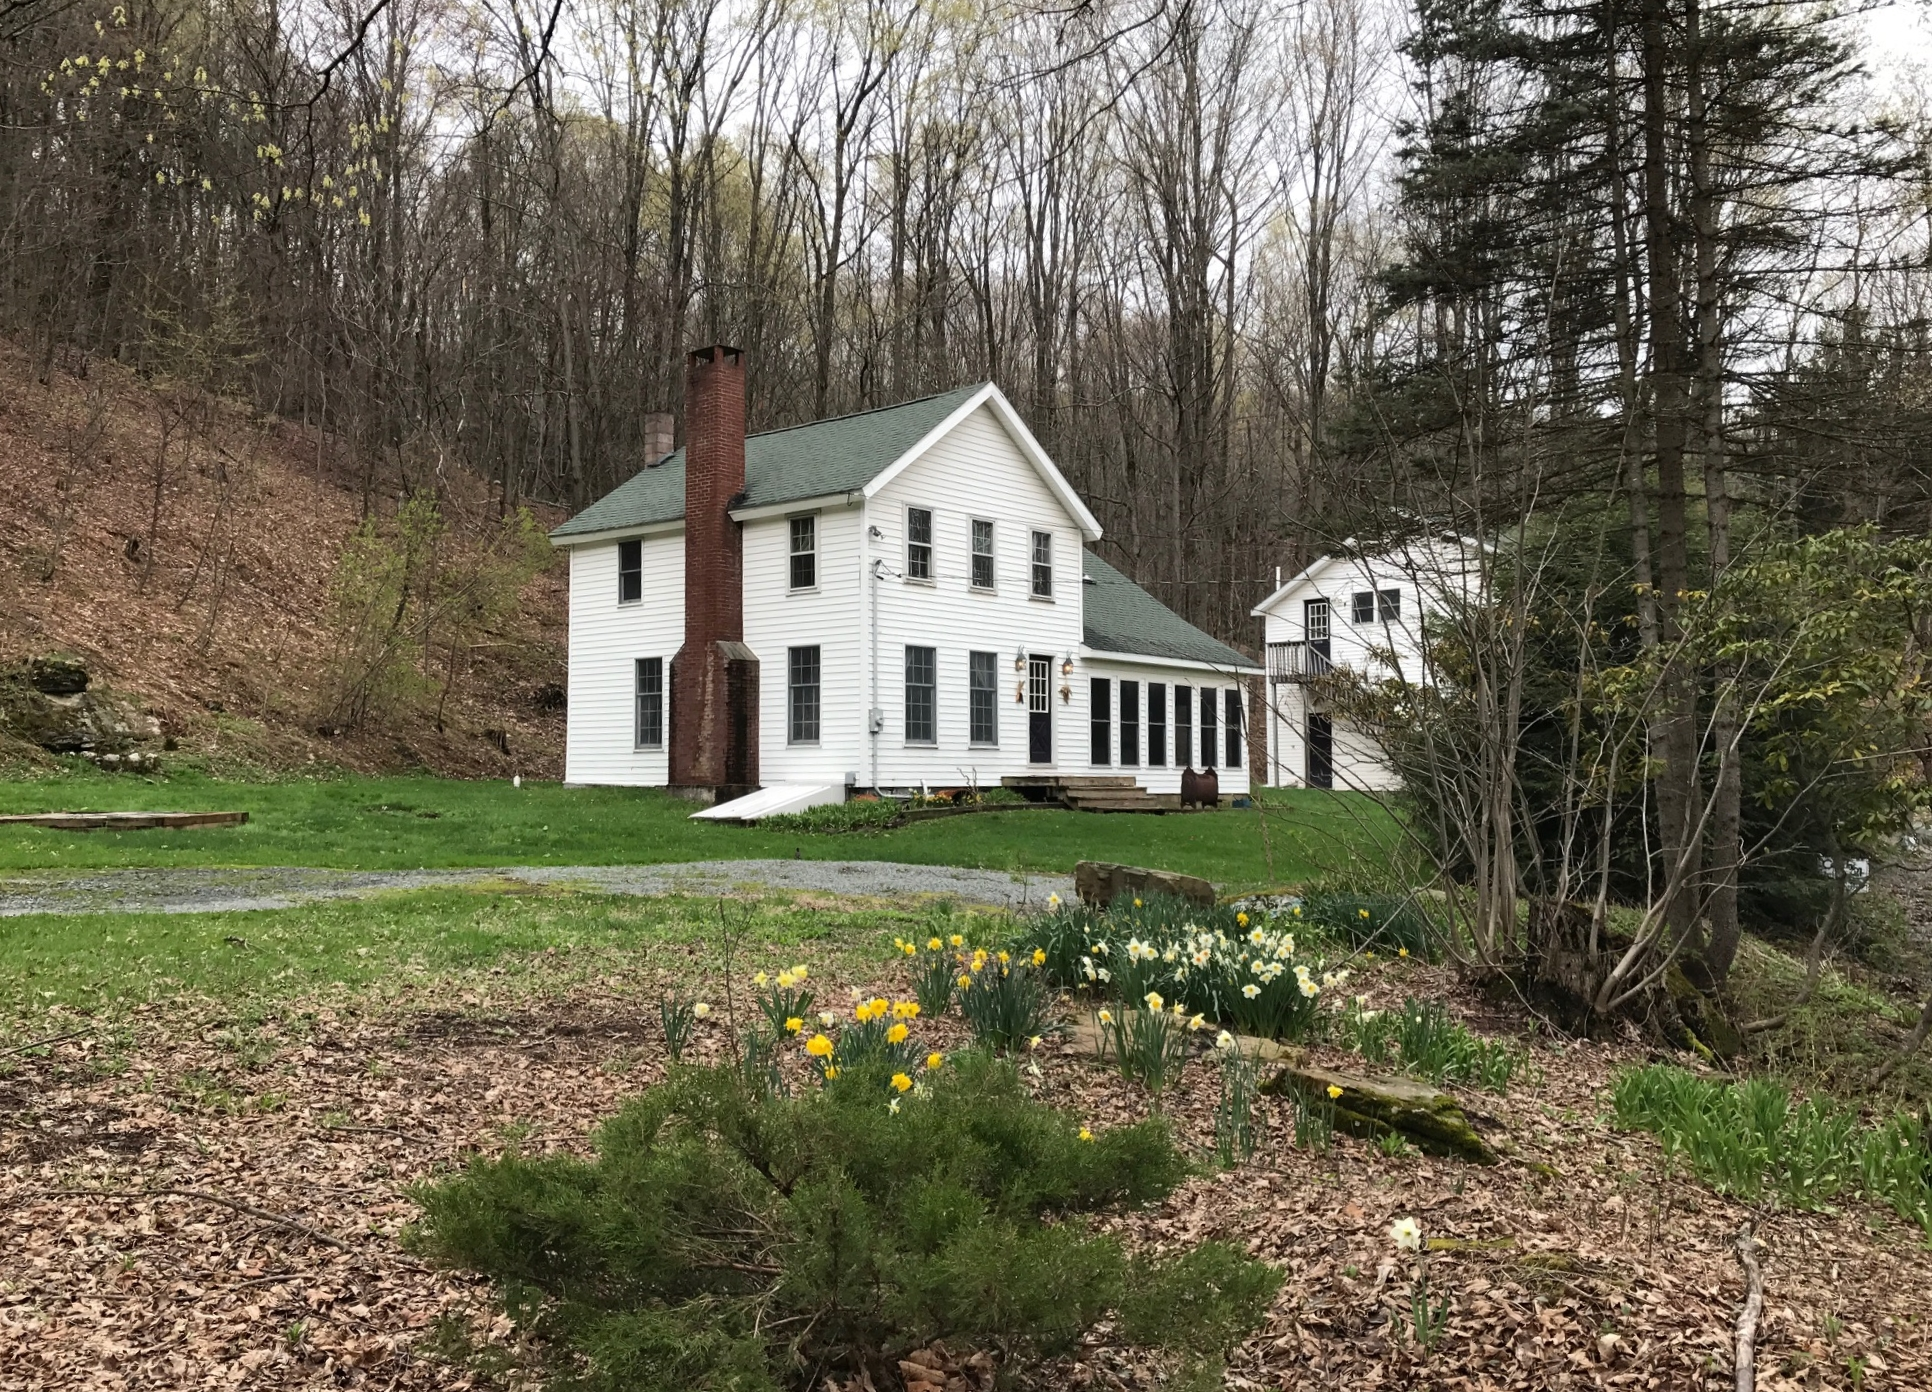 RECENTLY REDUCED!! This Lovely Farm House Sits on 51 Acres of Land and is Move in Ready! Features 3 Bedrooms & 2 Bathrooms! Enjoy Your Time in The Sun Room. Amid the Trees and Open Spaces Sits a Barn and a 2 Car Garage with a Bonus Room Upstairs. This Hom